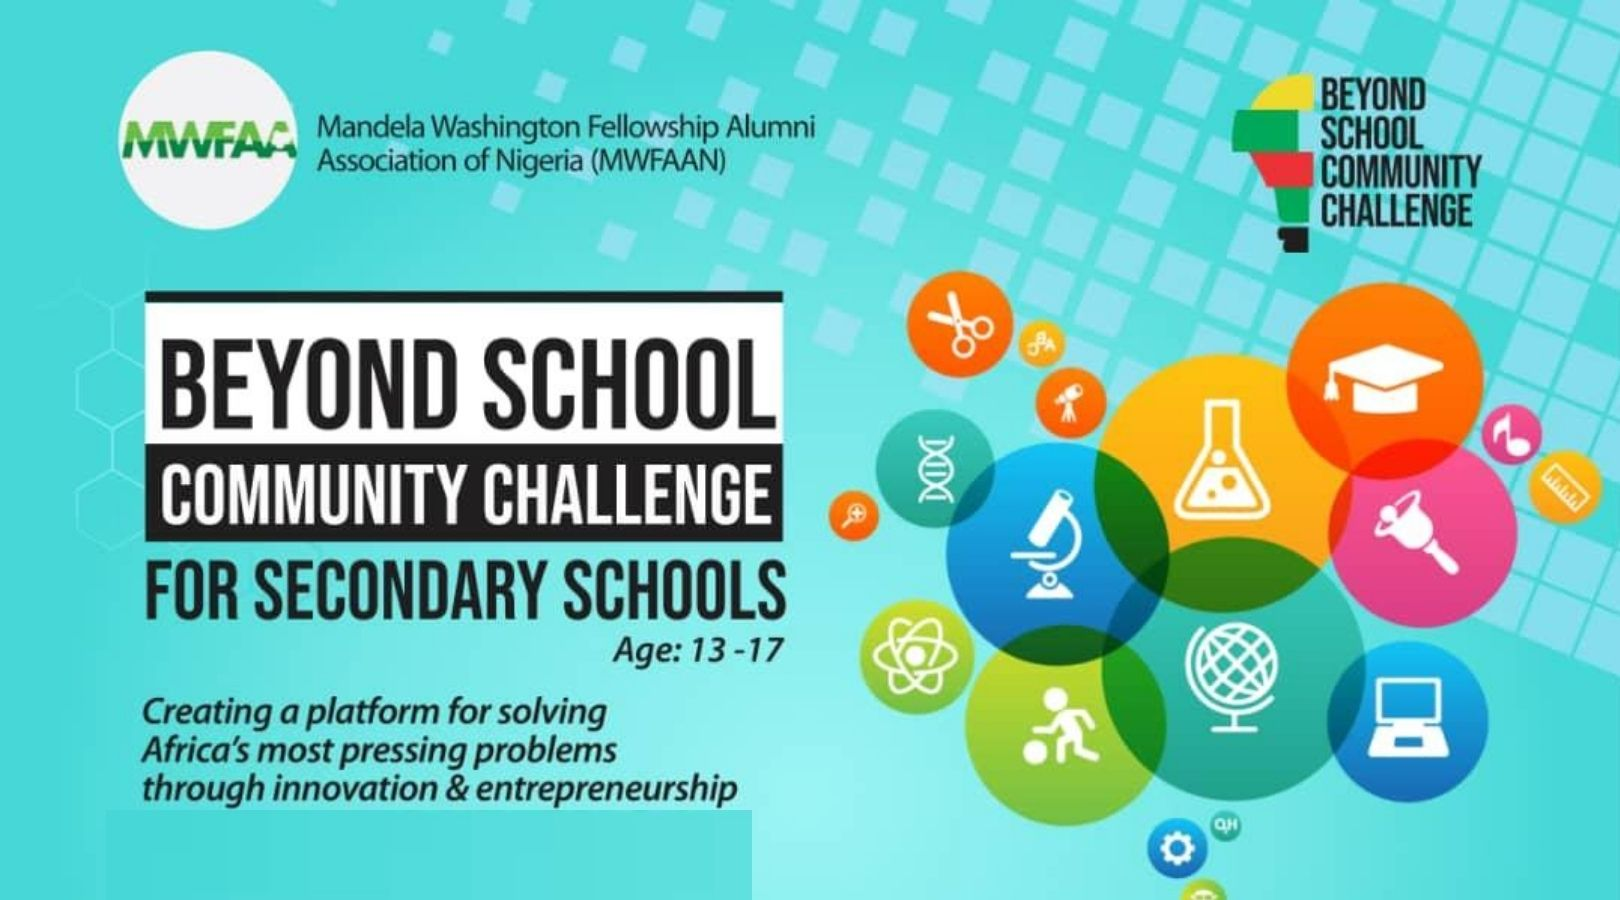 MWFAAN Beyond School Community Challenge 2020 for Nigerian Secondary School Students (Up to N1 million in Cash Prizes)